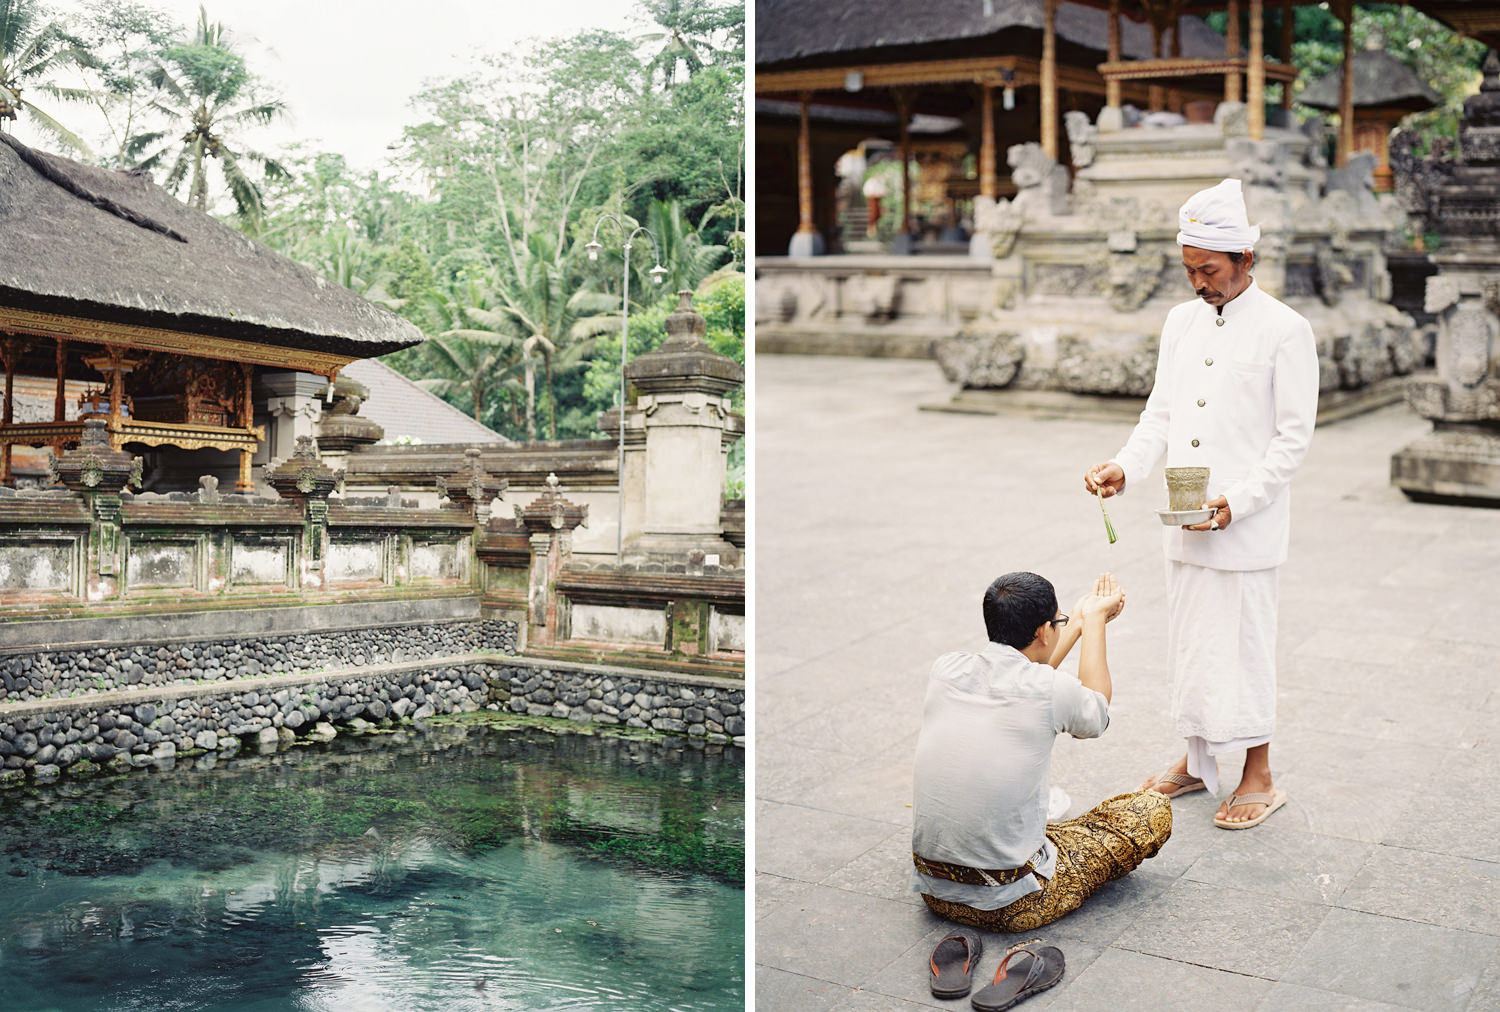 traditional prayers in bali temple by hindu priest